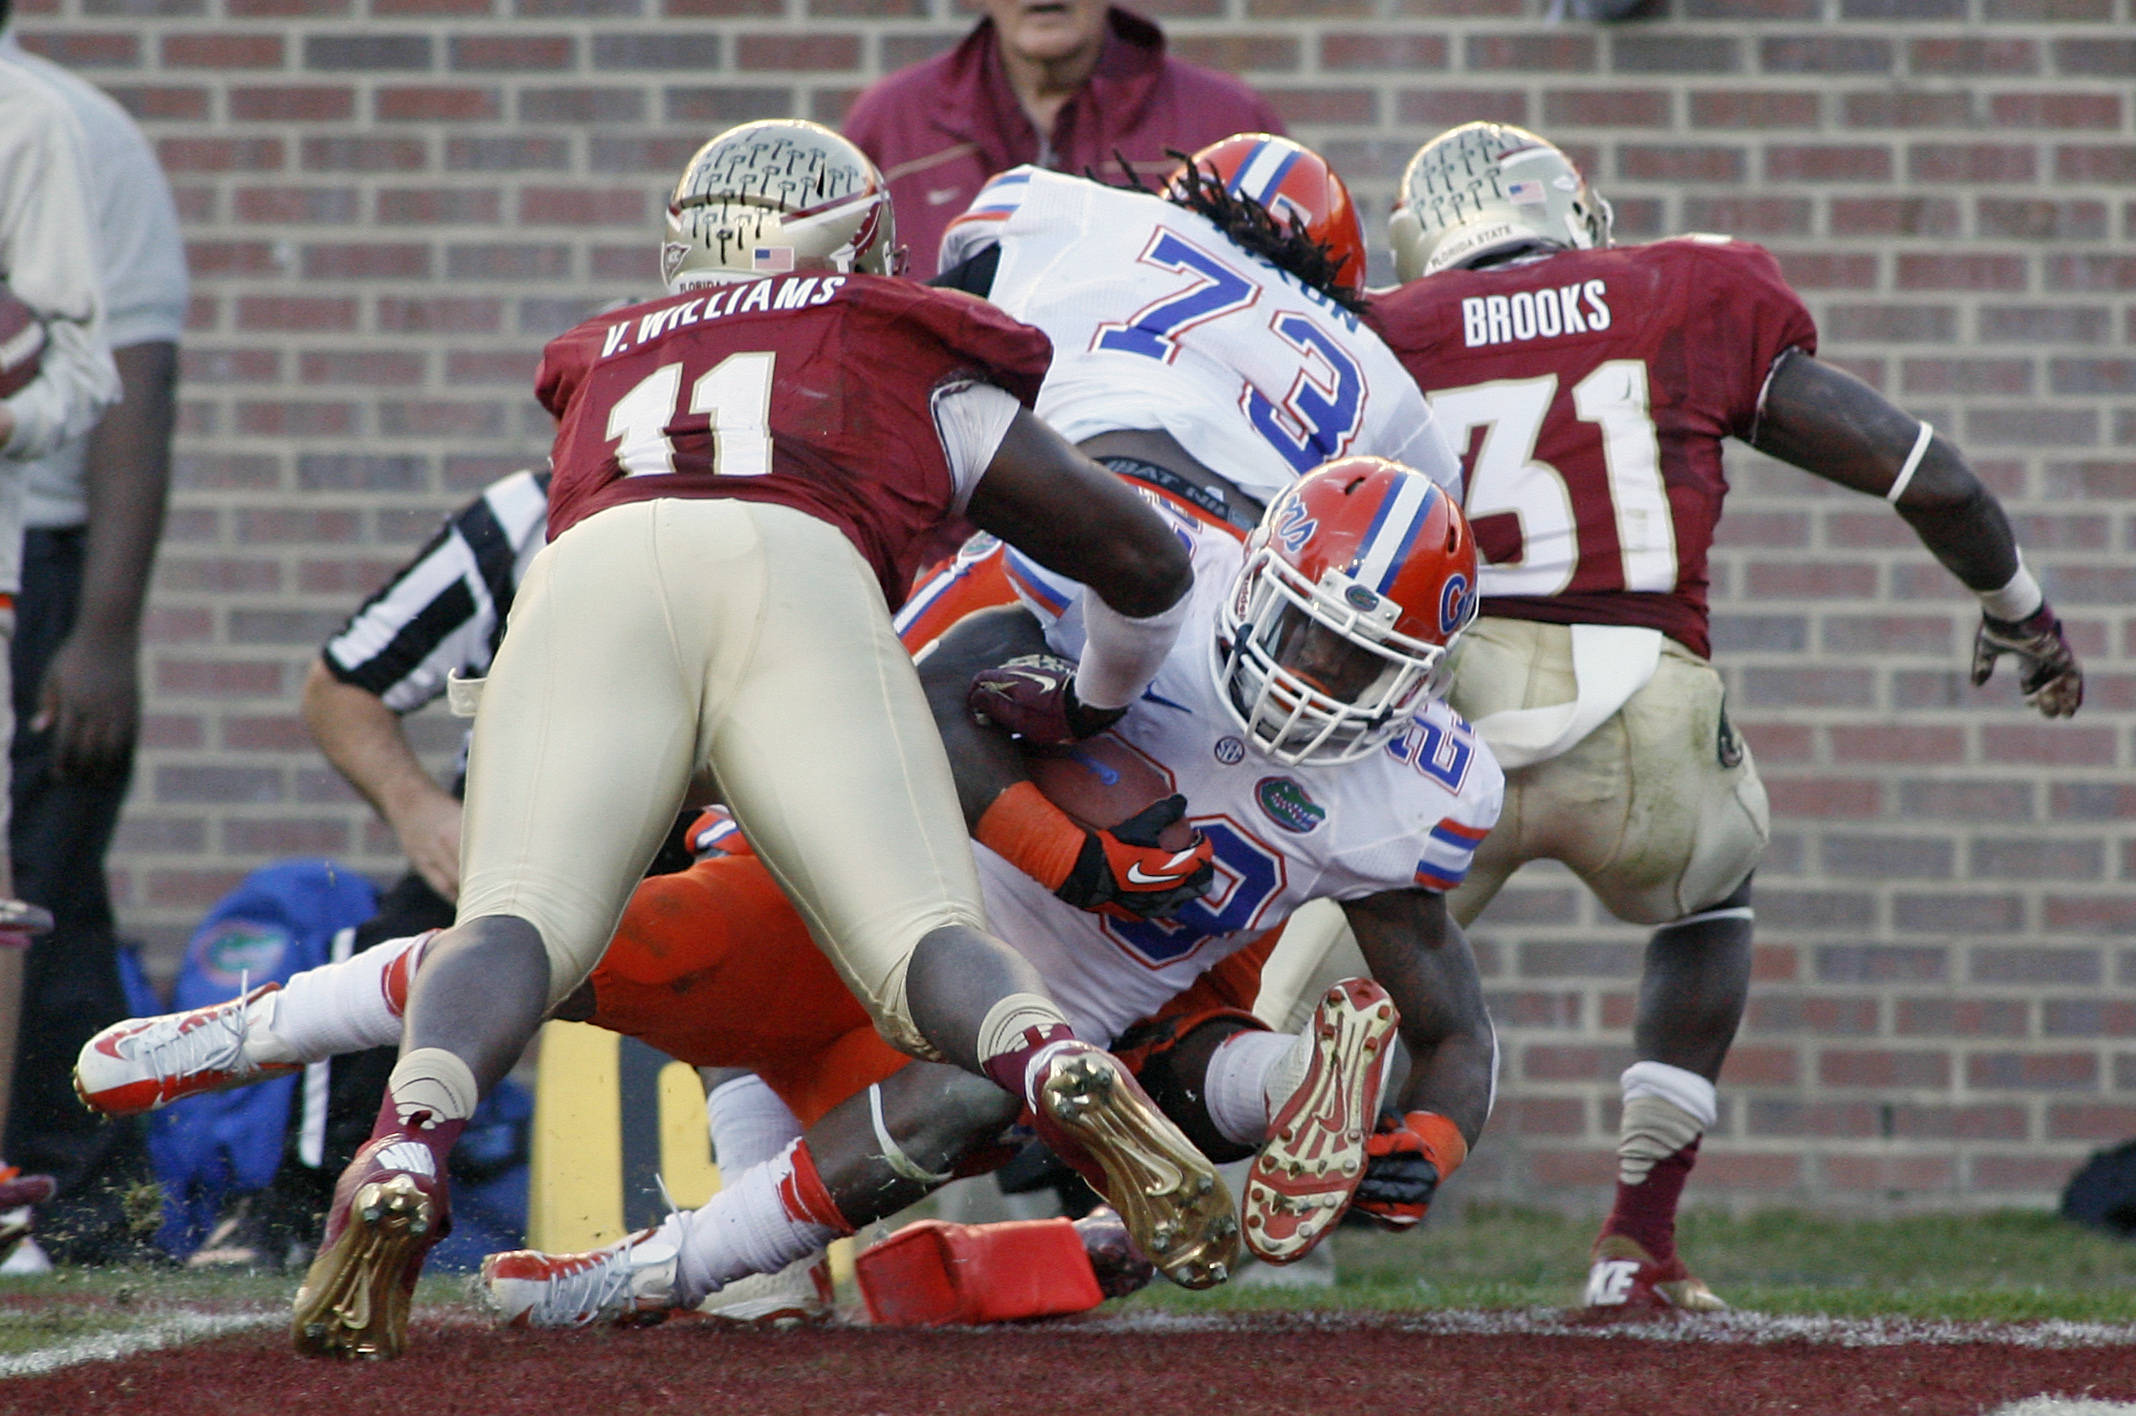 Florida running back Mike Gillislee, center, scores past Florida State linebacker Vince Williams (11). (AP Photo/Phil Sears)